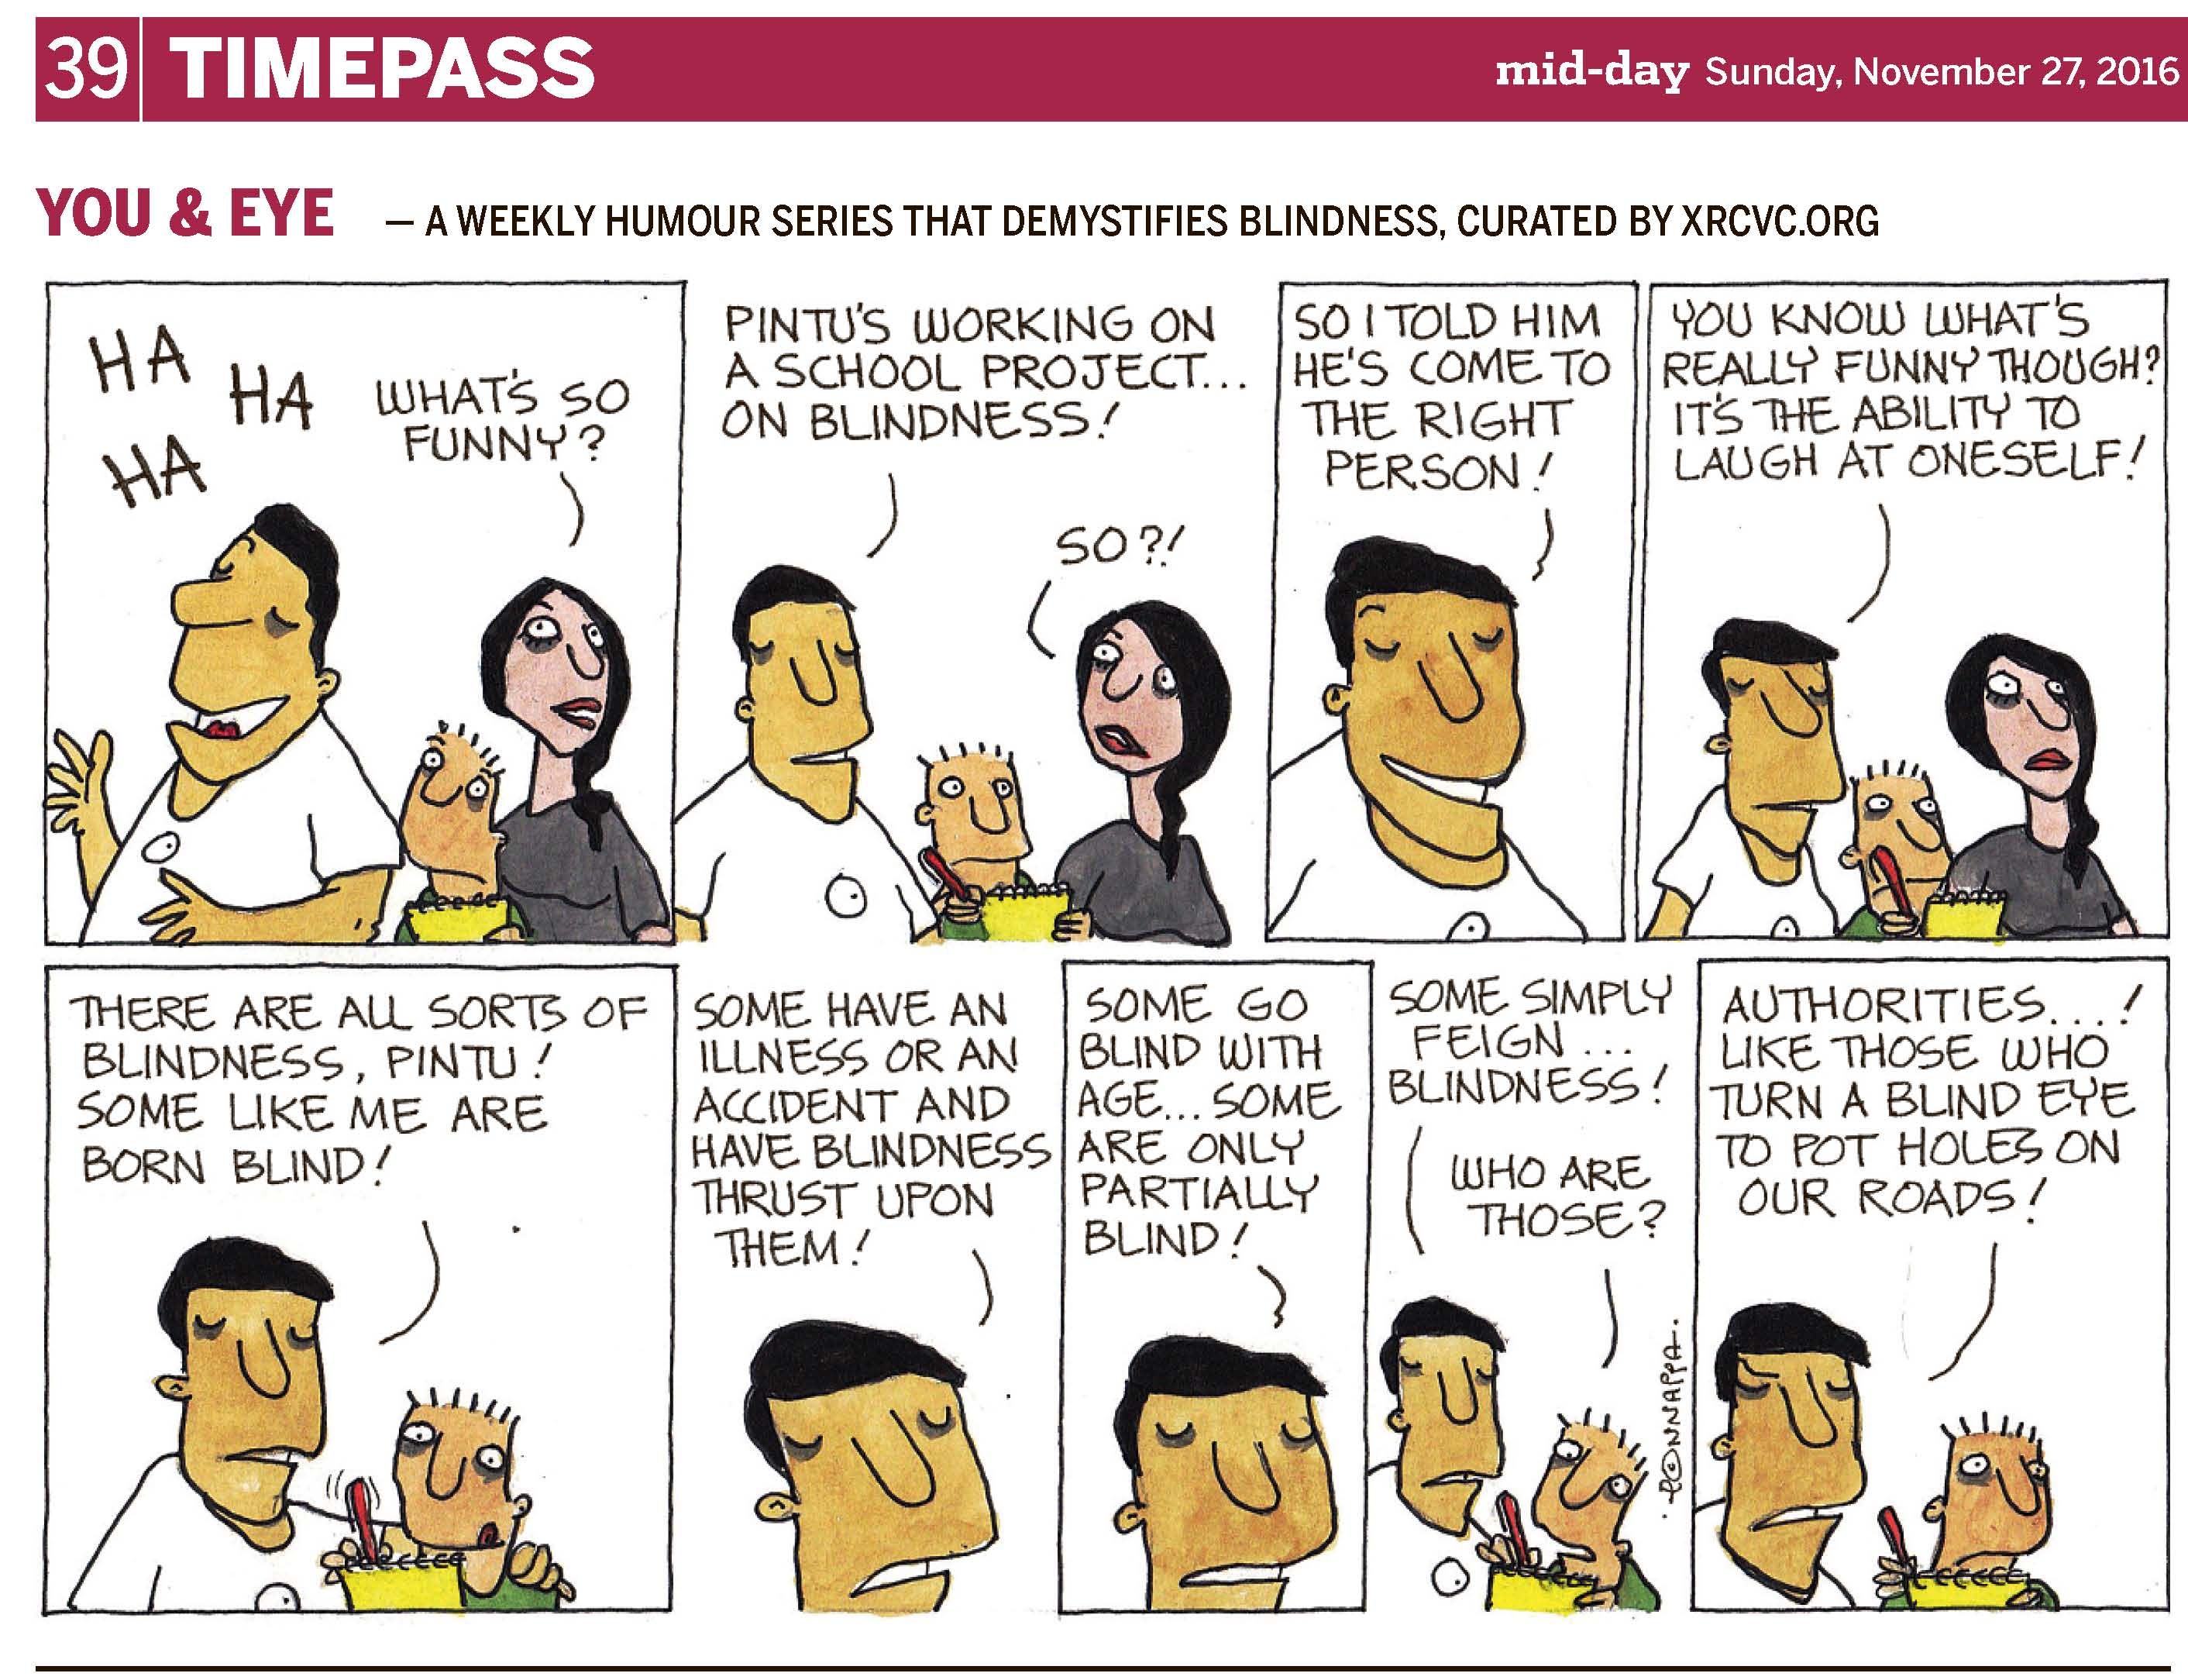 39 | TIMEPASS YOU & EYE – A WEEKLY HUMOUR SERIES THAT DEMYSTIFIES BLINDNESS, CURATED BY XRCVC.ORG Image description: A cartoon strip with 9 frames Frame 1: (BG standing and laughing, while his nephew, Pintu, and his friend, Tippy, stand behind him. Pintu is holding a yellow notepad at the level of his chest.) BG: Ha Ha Ha Tippy: What's so funny? Frame 2: (BG looks towards Pintu and Tippy. Pintu is holding a red pencil with the notepad in front of his chest.) BG: Pintu's working on a school project… on blindness!